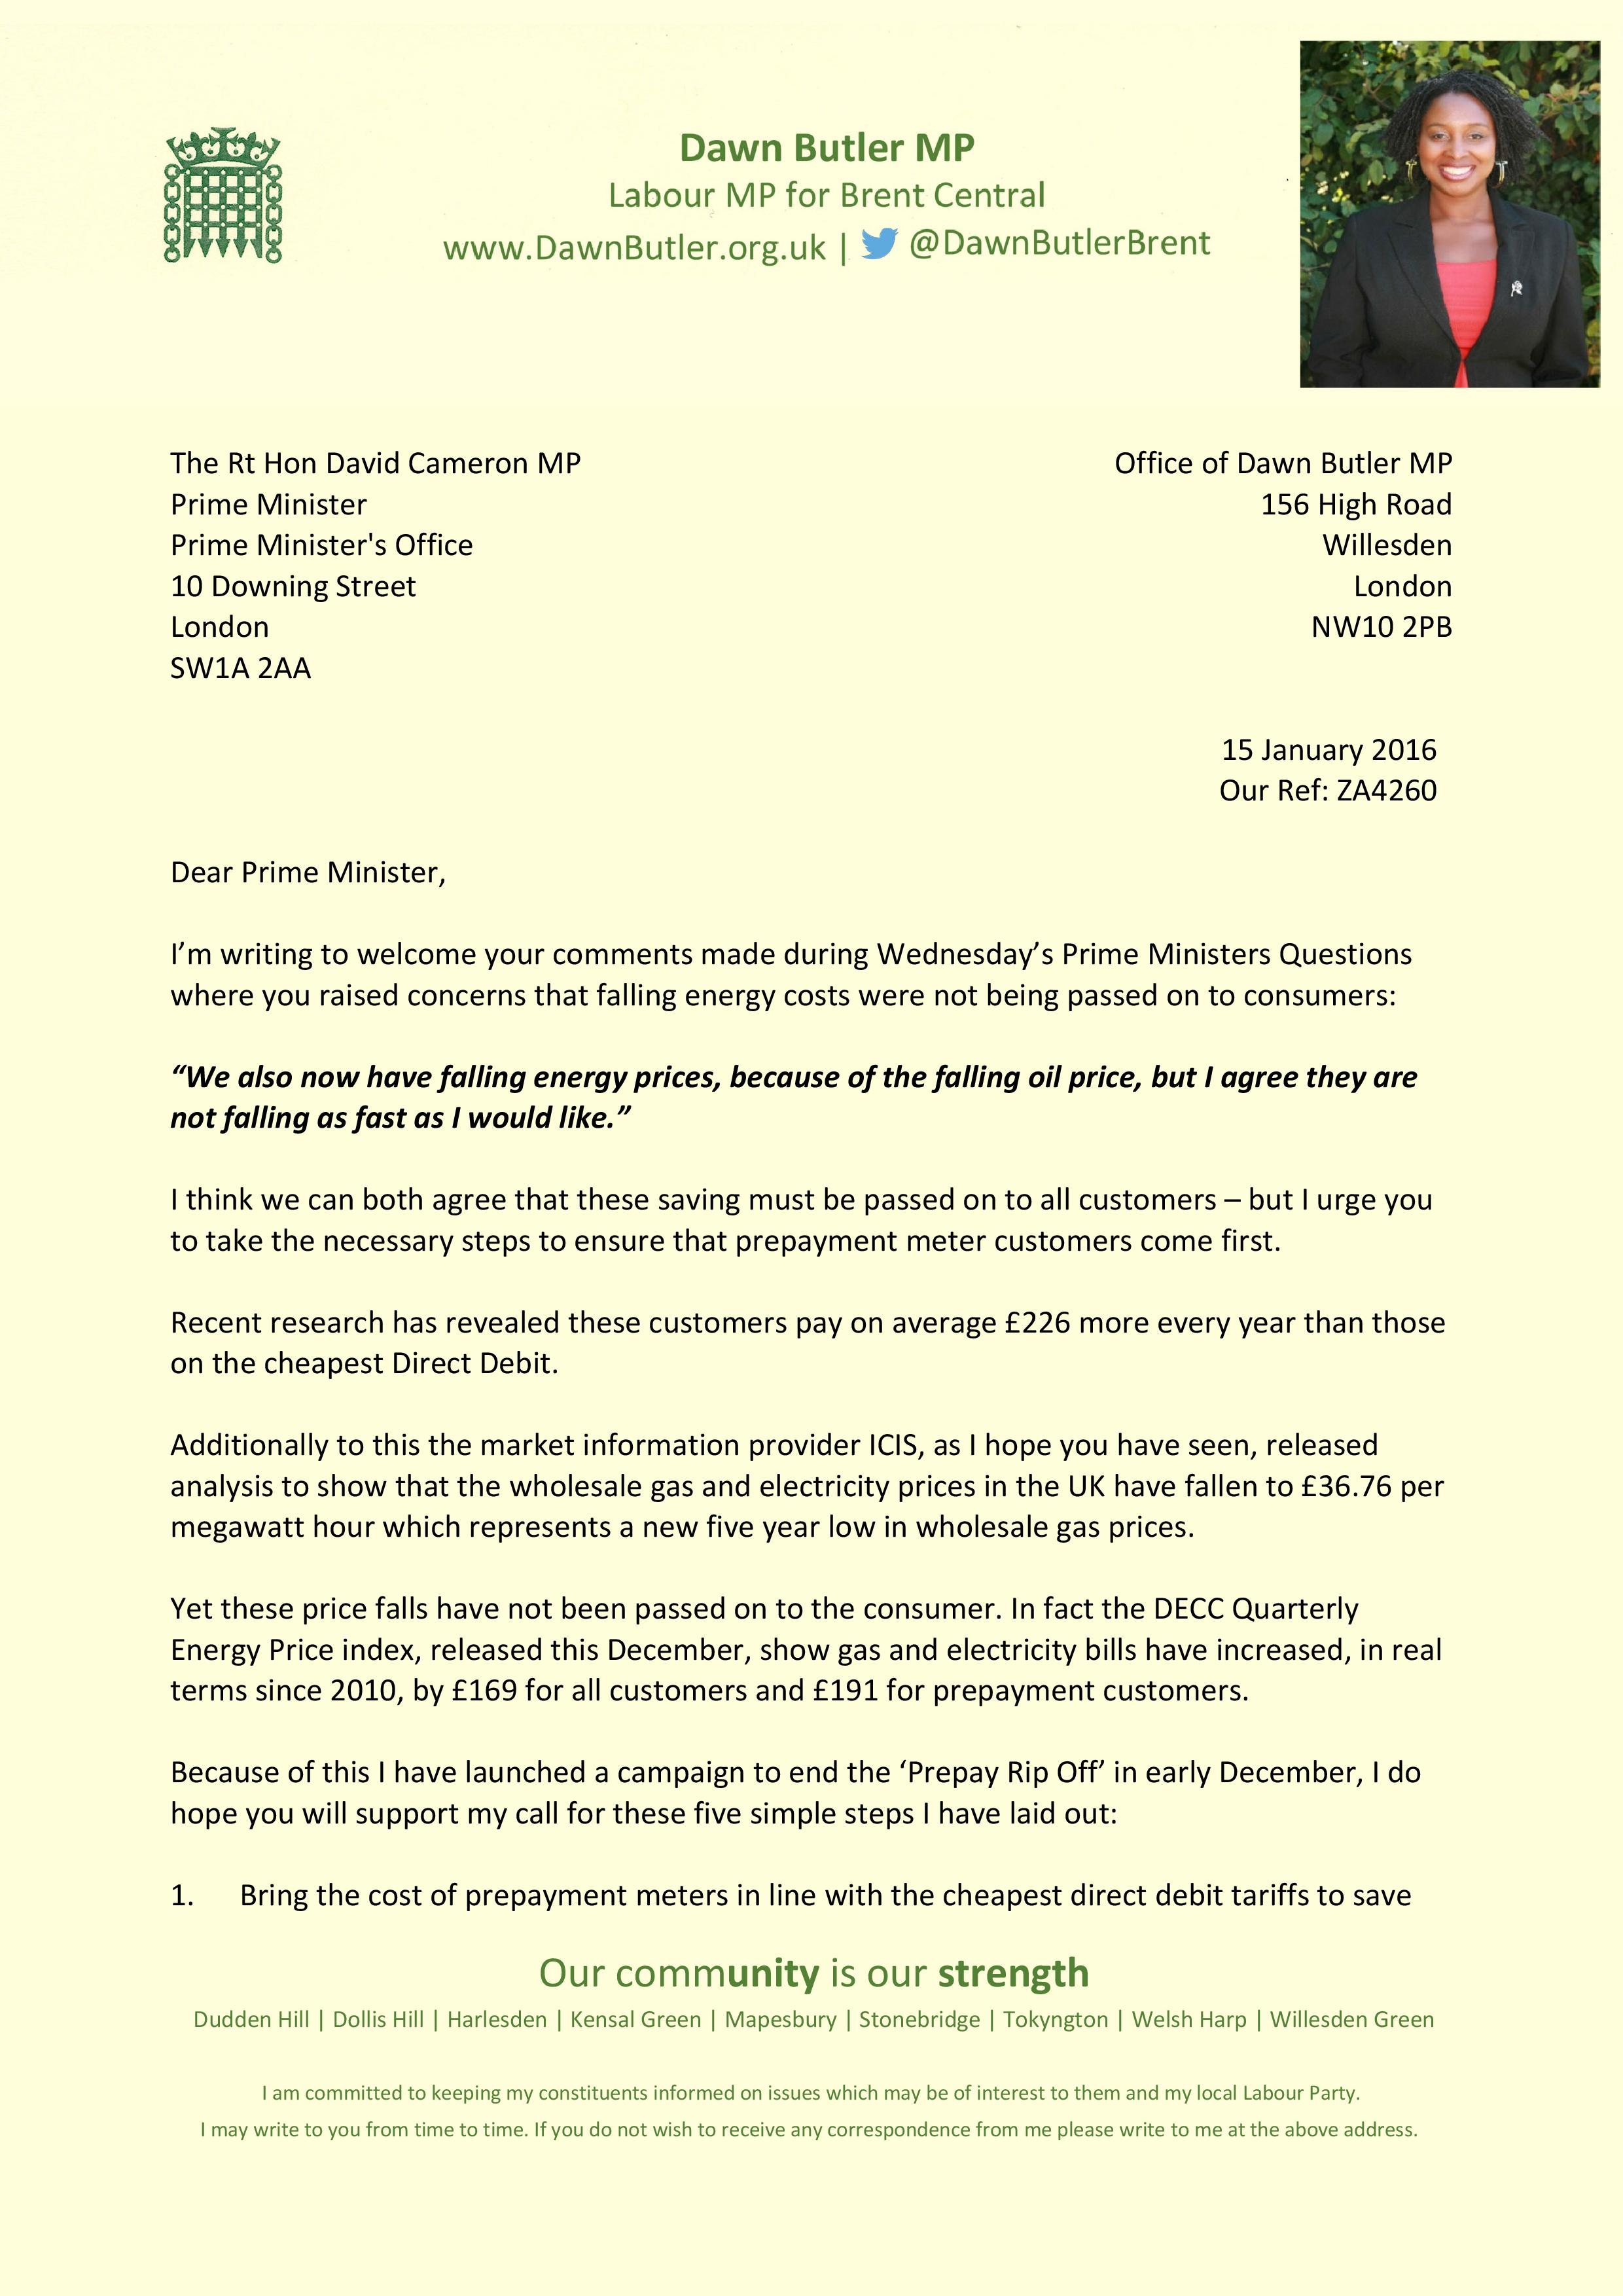 PM_Letter-page-001.jpg